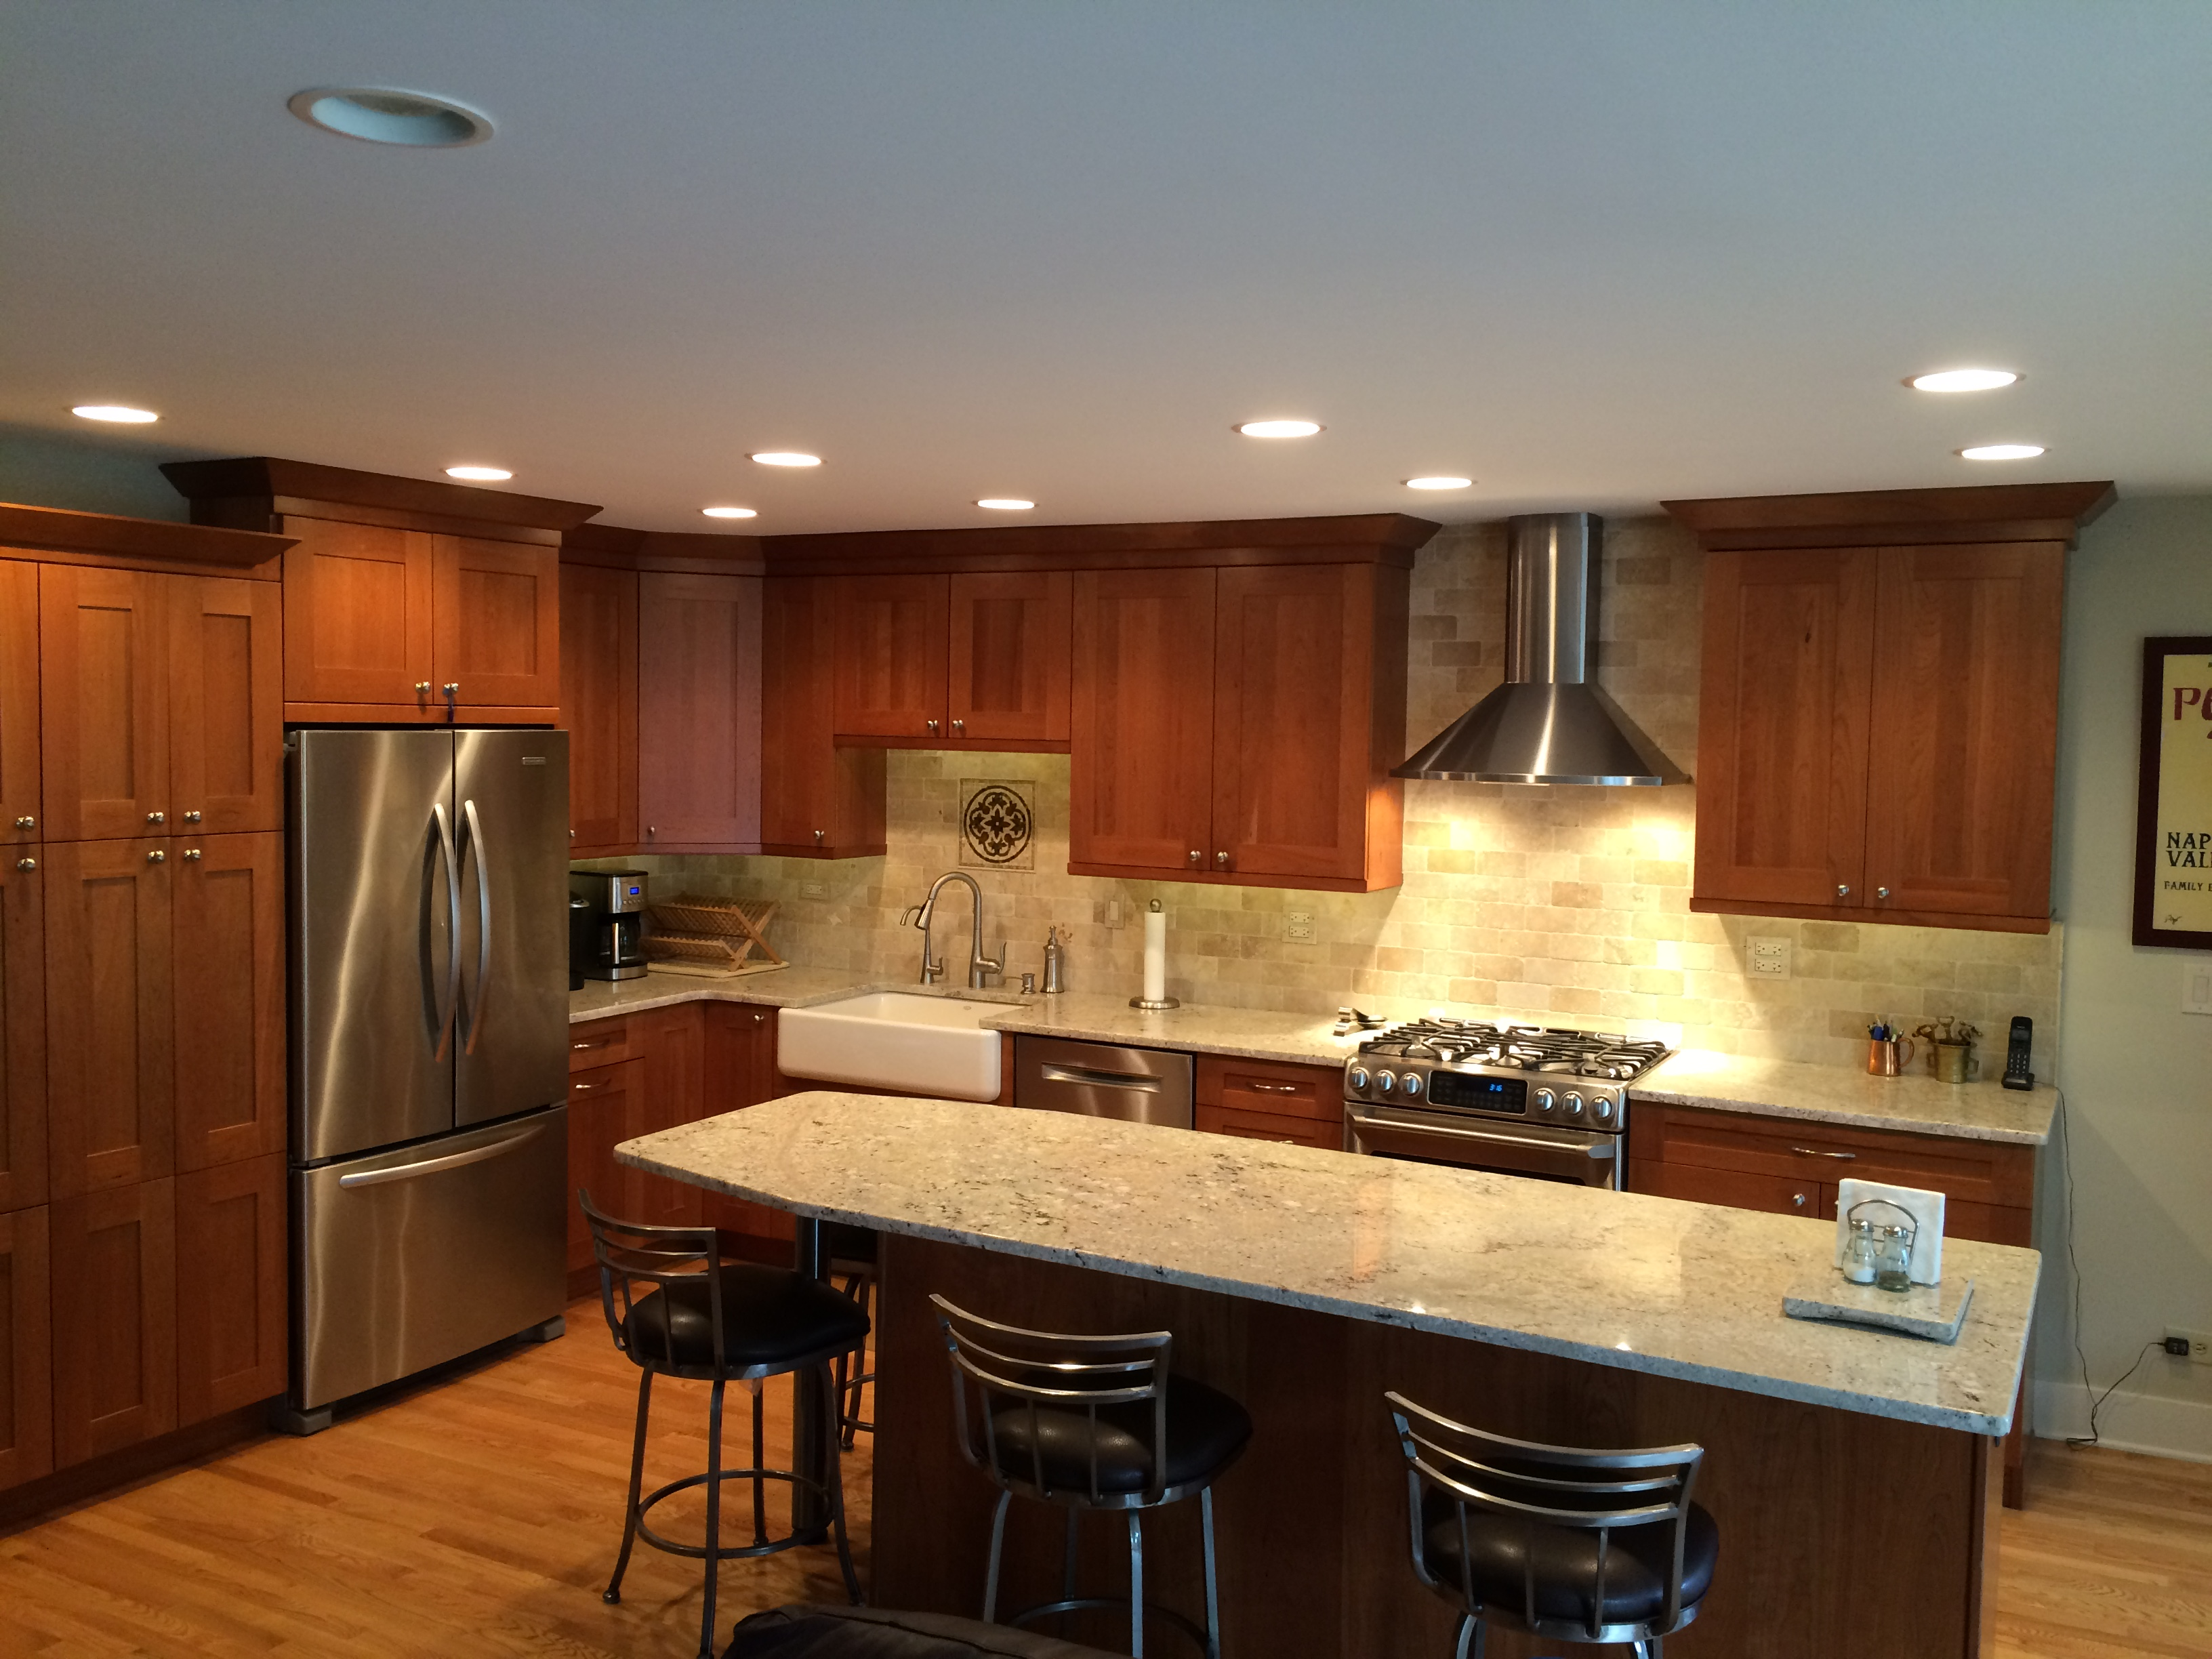 Kitchen discounters of america inc lake zurich illinois for Kitchen design zurich